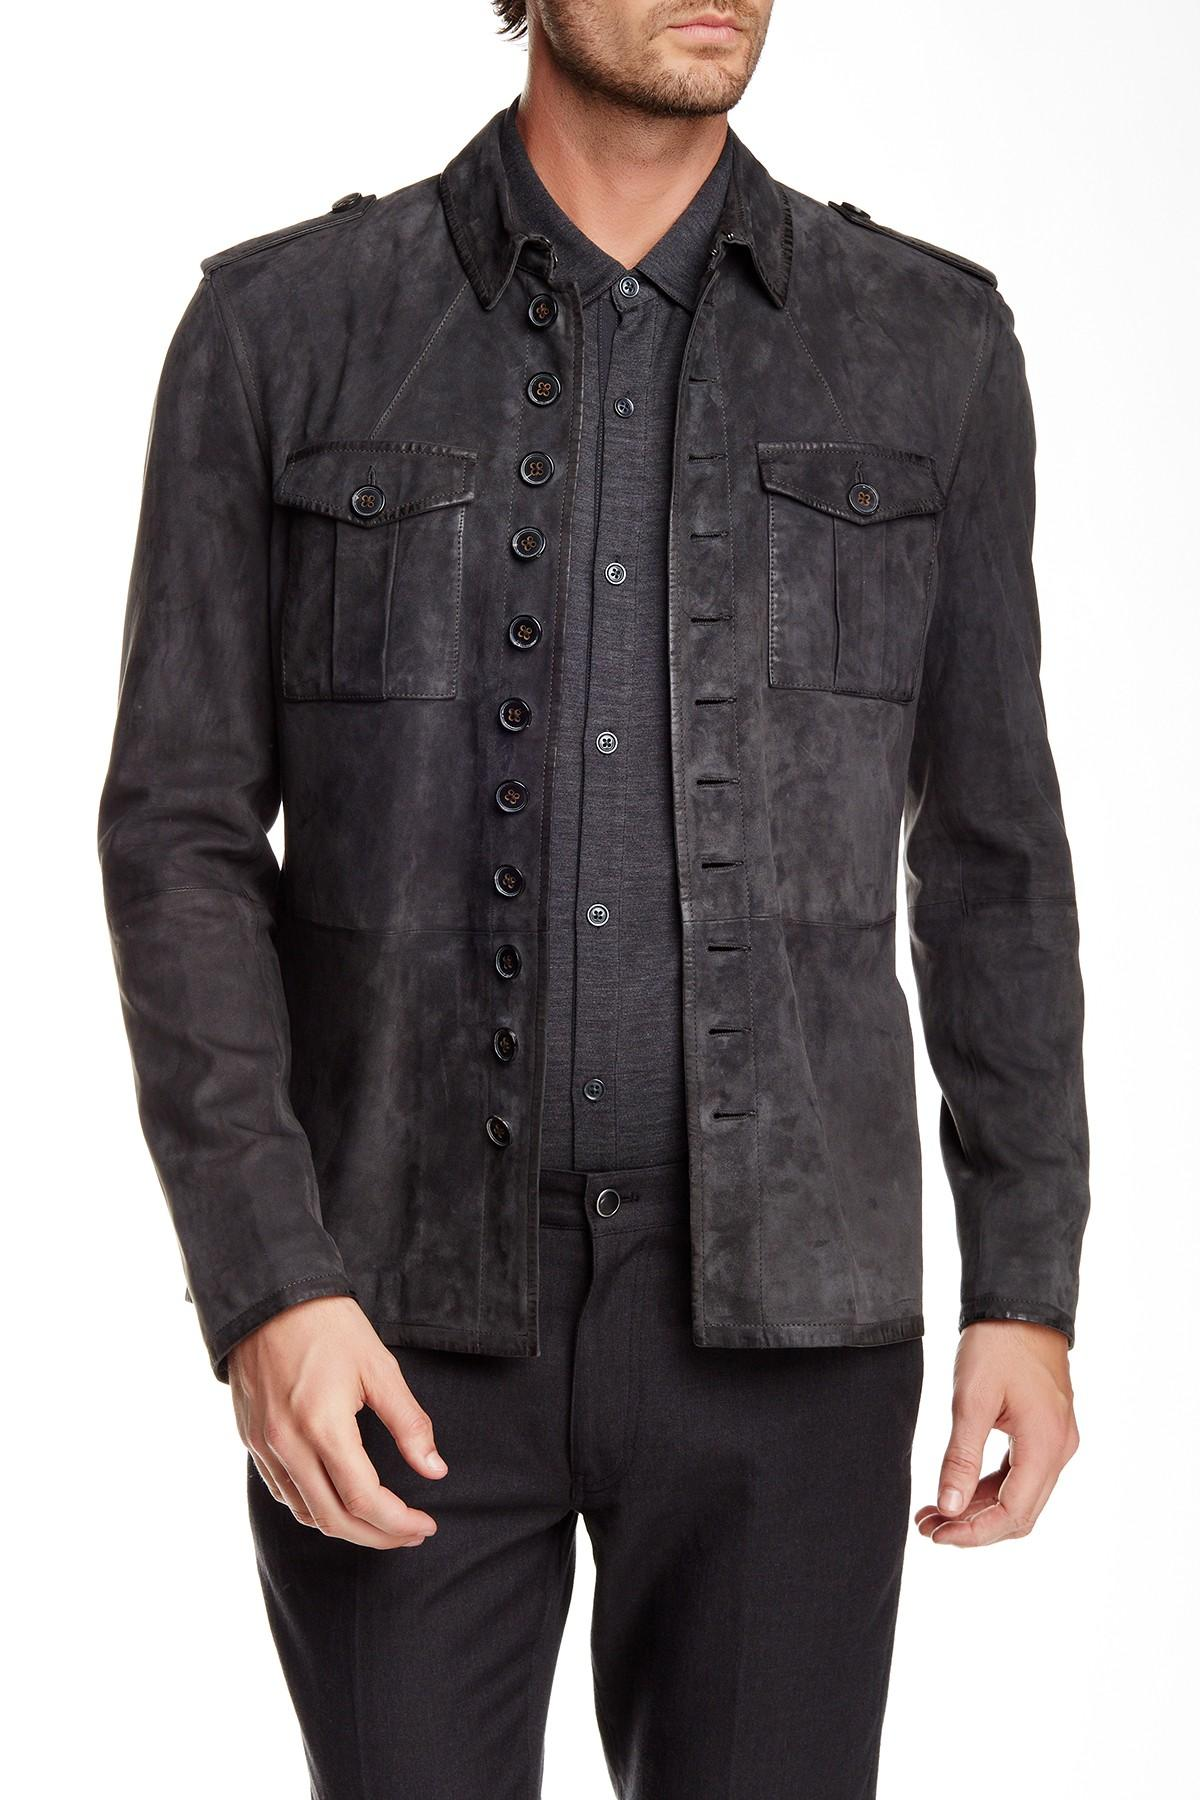 Suede Jacket Outfits For Men 20 Ways To Wear A Suede Jacket: John Varvatos Military Button Front Suede Jacket In